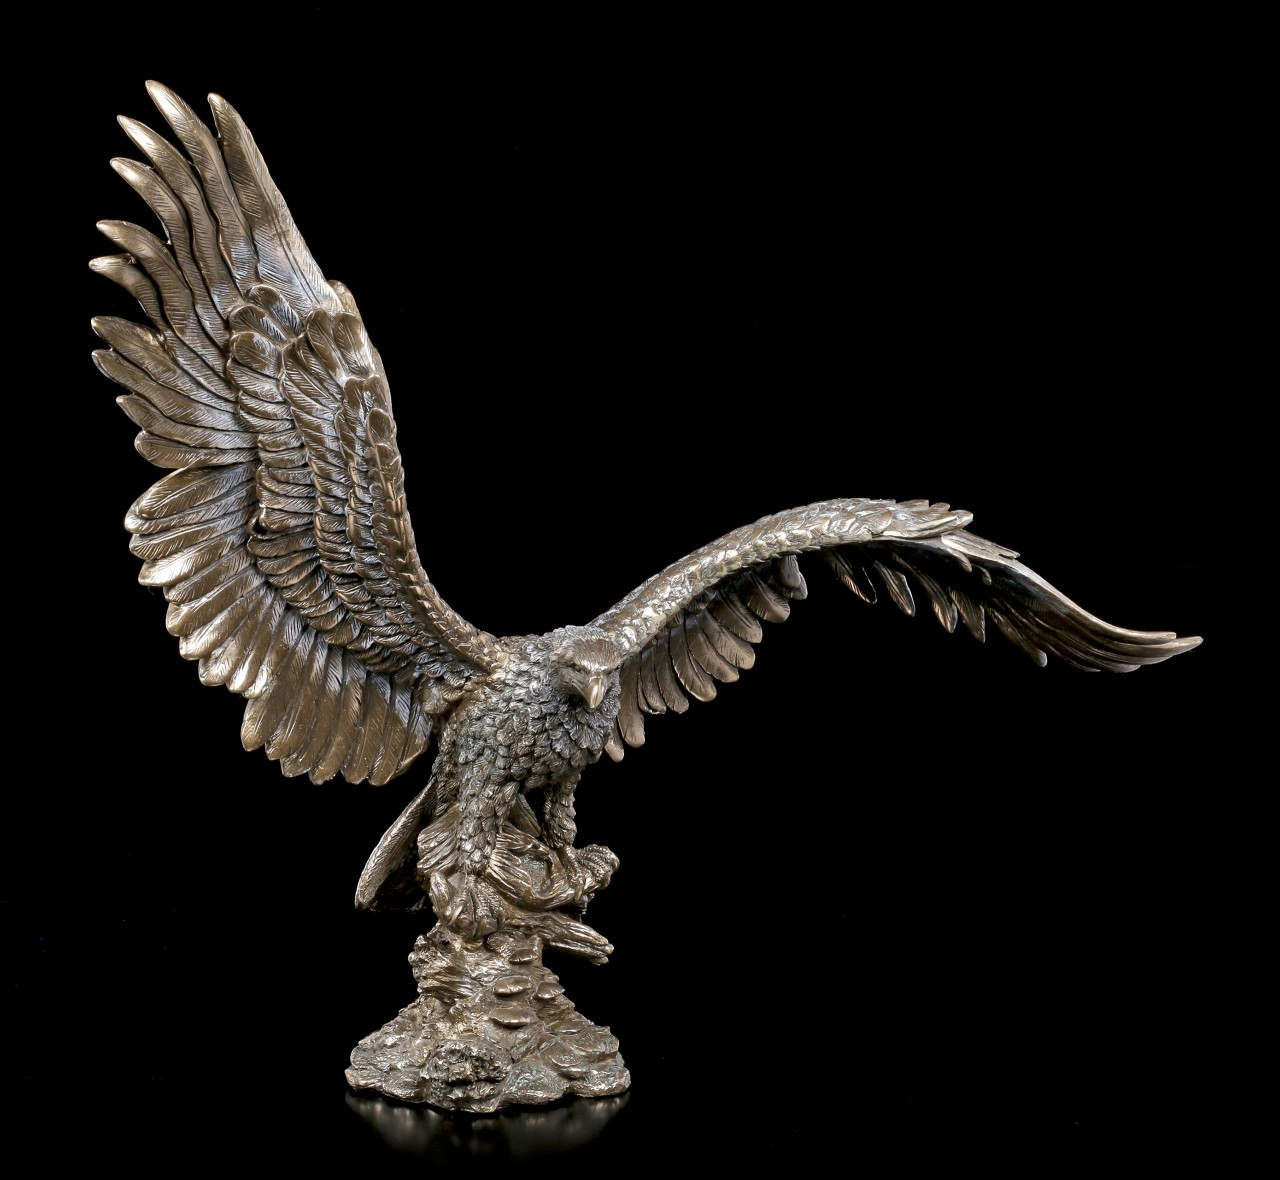 Eagle Figurine with Spreading Wings - bronzed